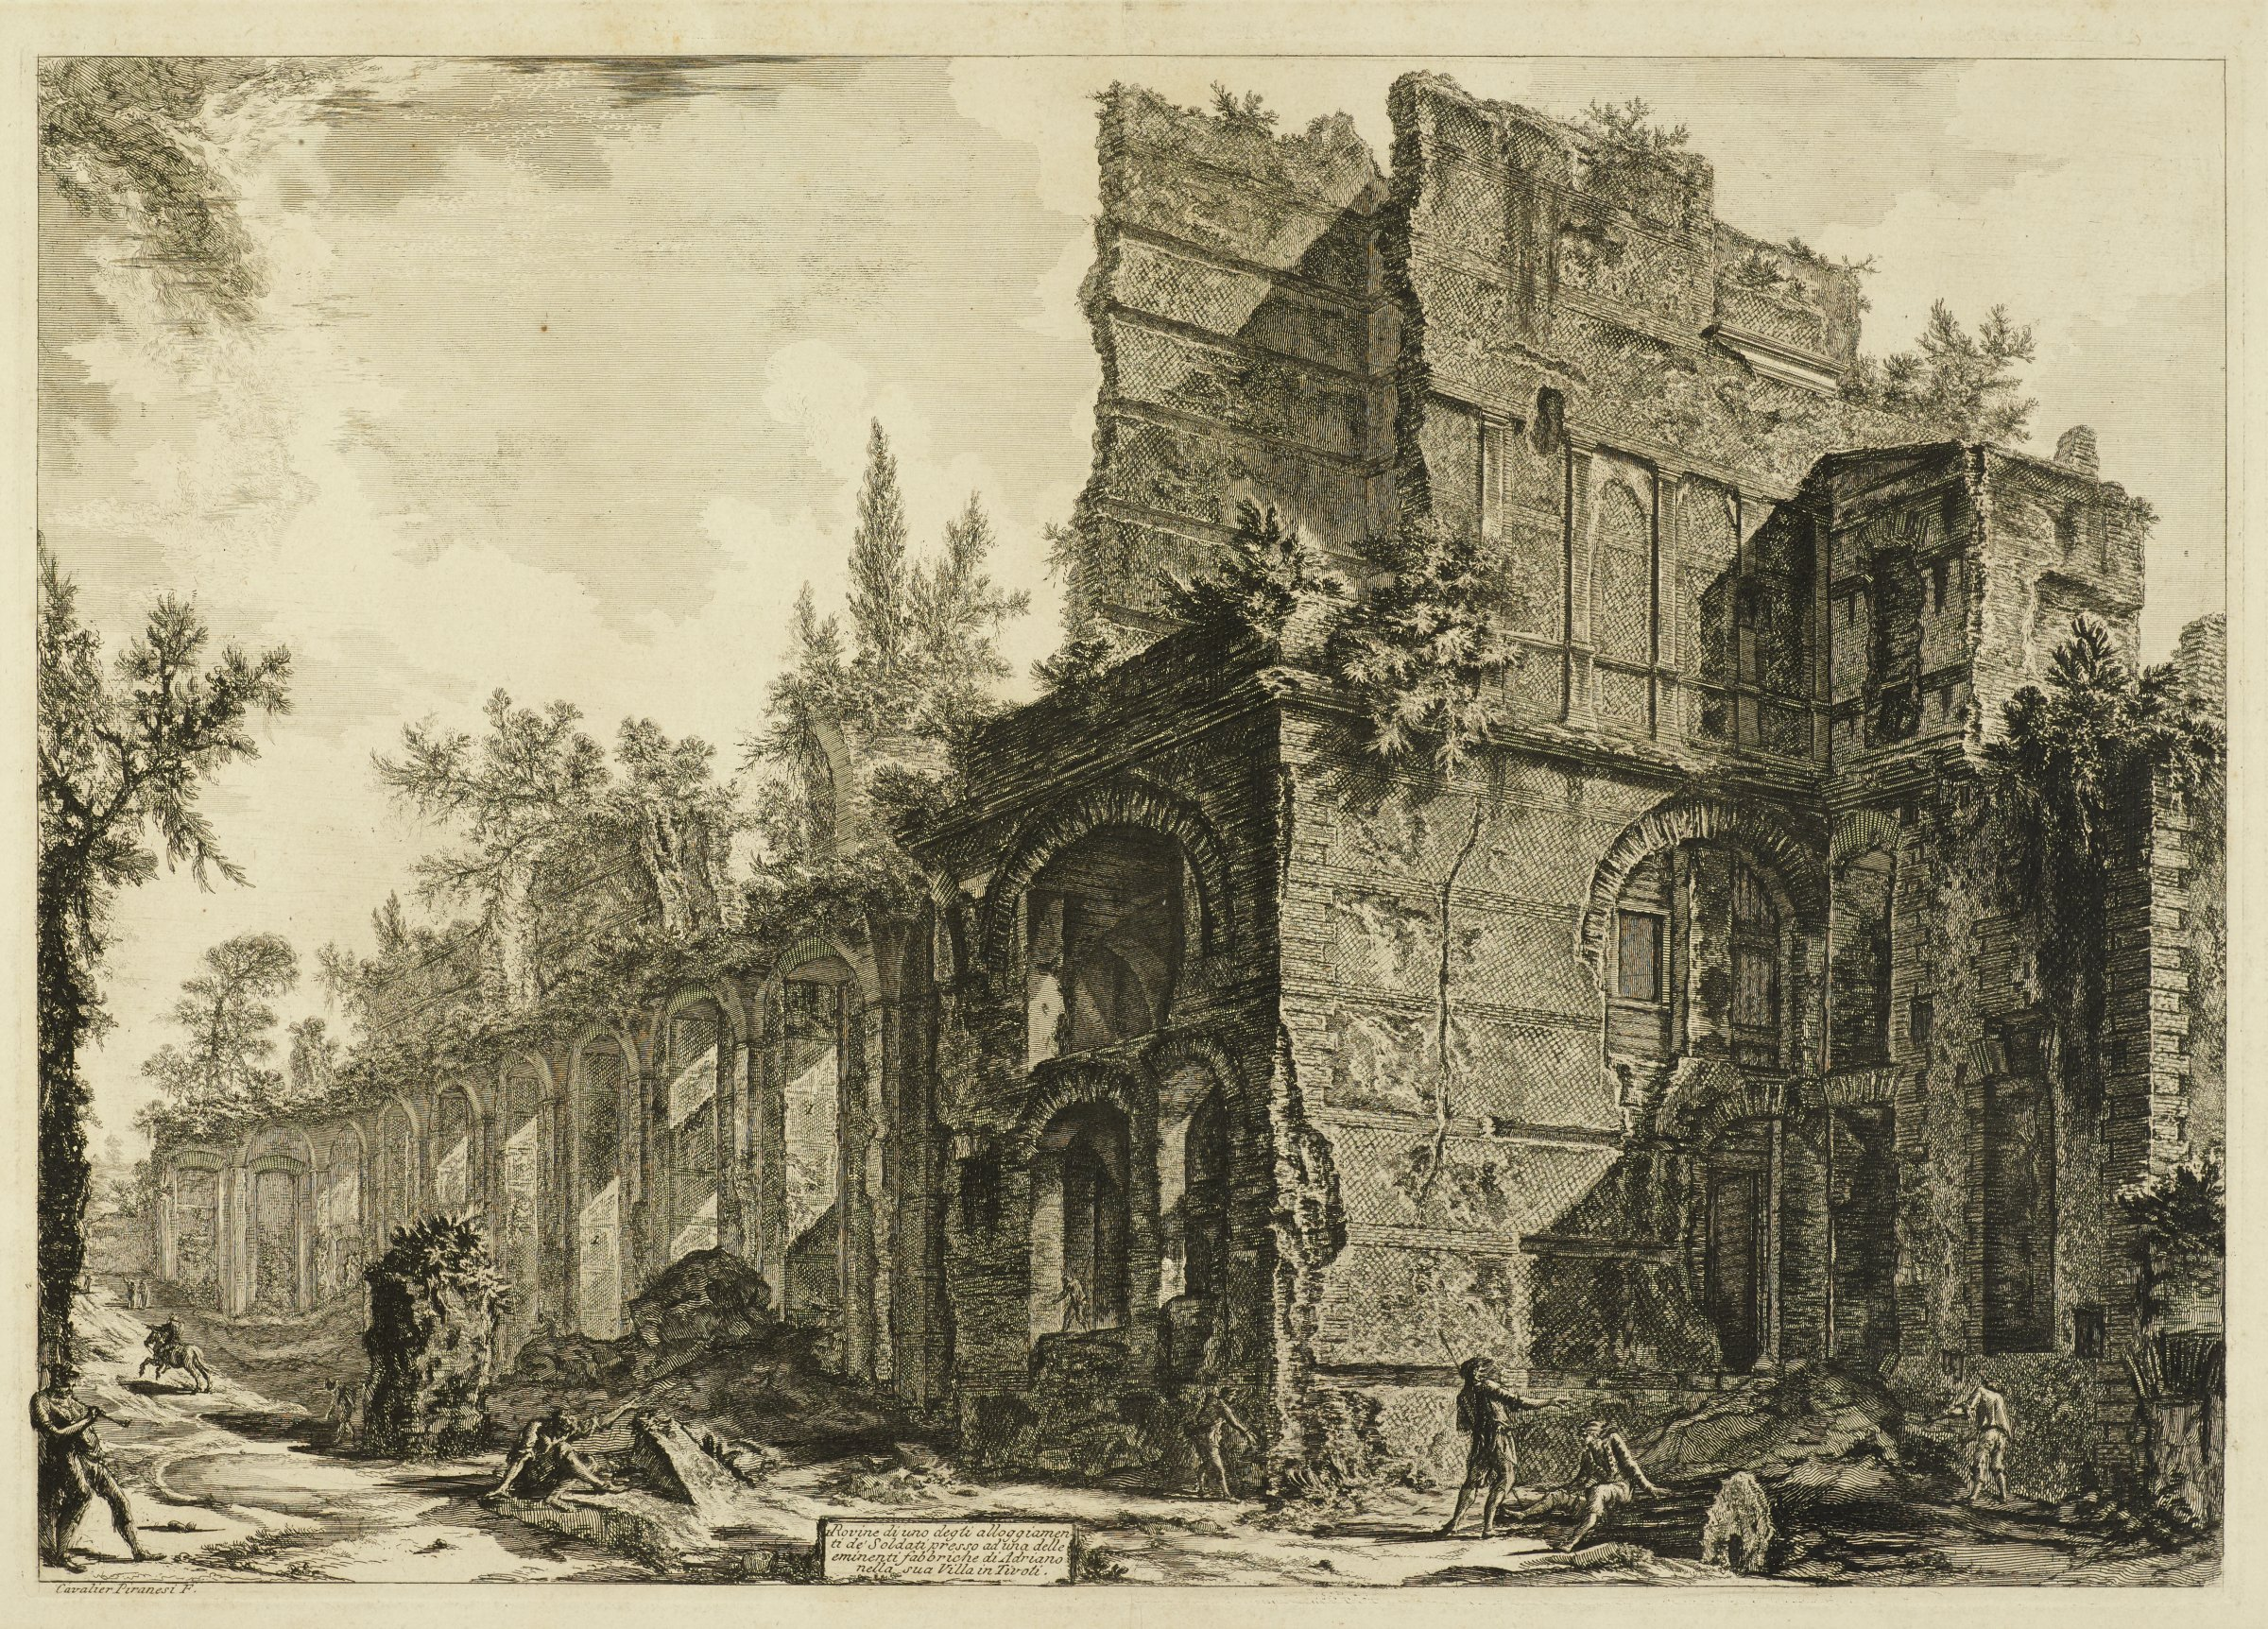 Hadrian's Villa: The Remains of the so-called Pretorio, Giovanni Battista Piranesi, etching with engraving and sulfur tint